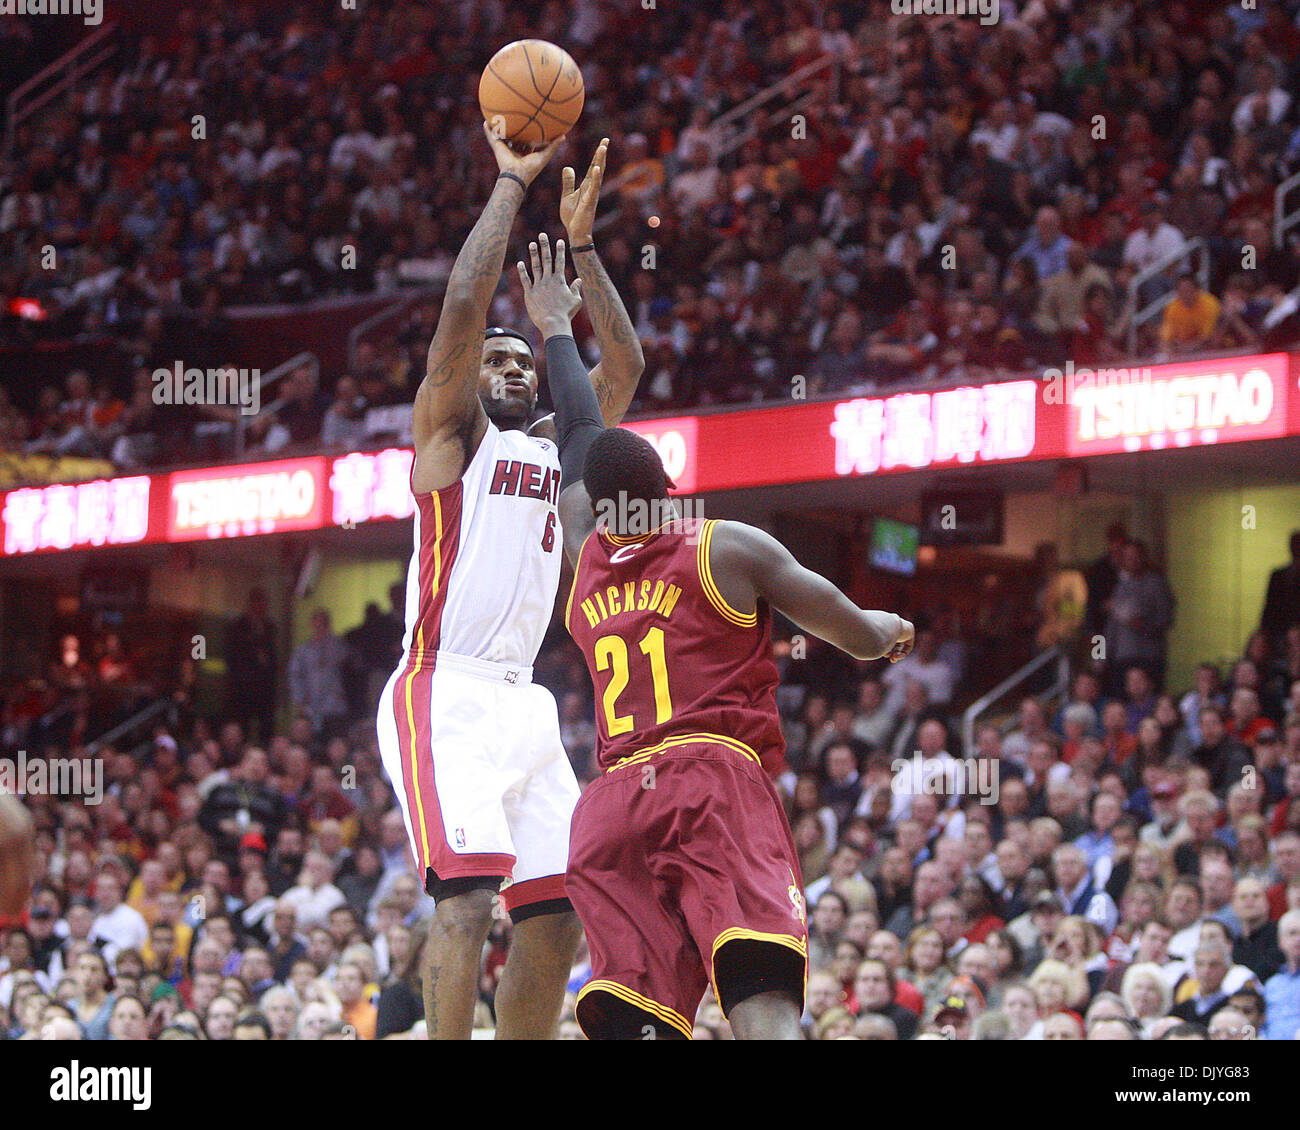 Dec 02, 2010 - Cleveland, OH, USA - LeBron James pulls up for a jumpshot over his former teammate J. J. Hickson.  (Credit Image: © Damon Higgins/The Palm Beach Post/ZUMAPRESS.com) - Stock Image